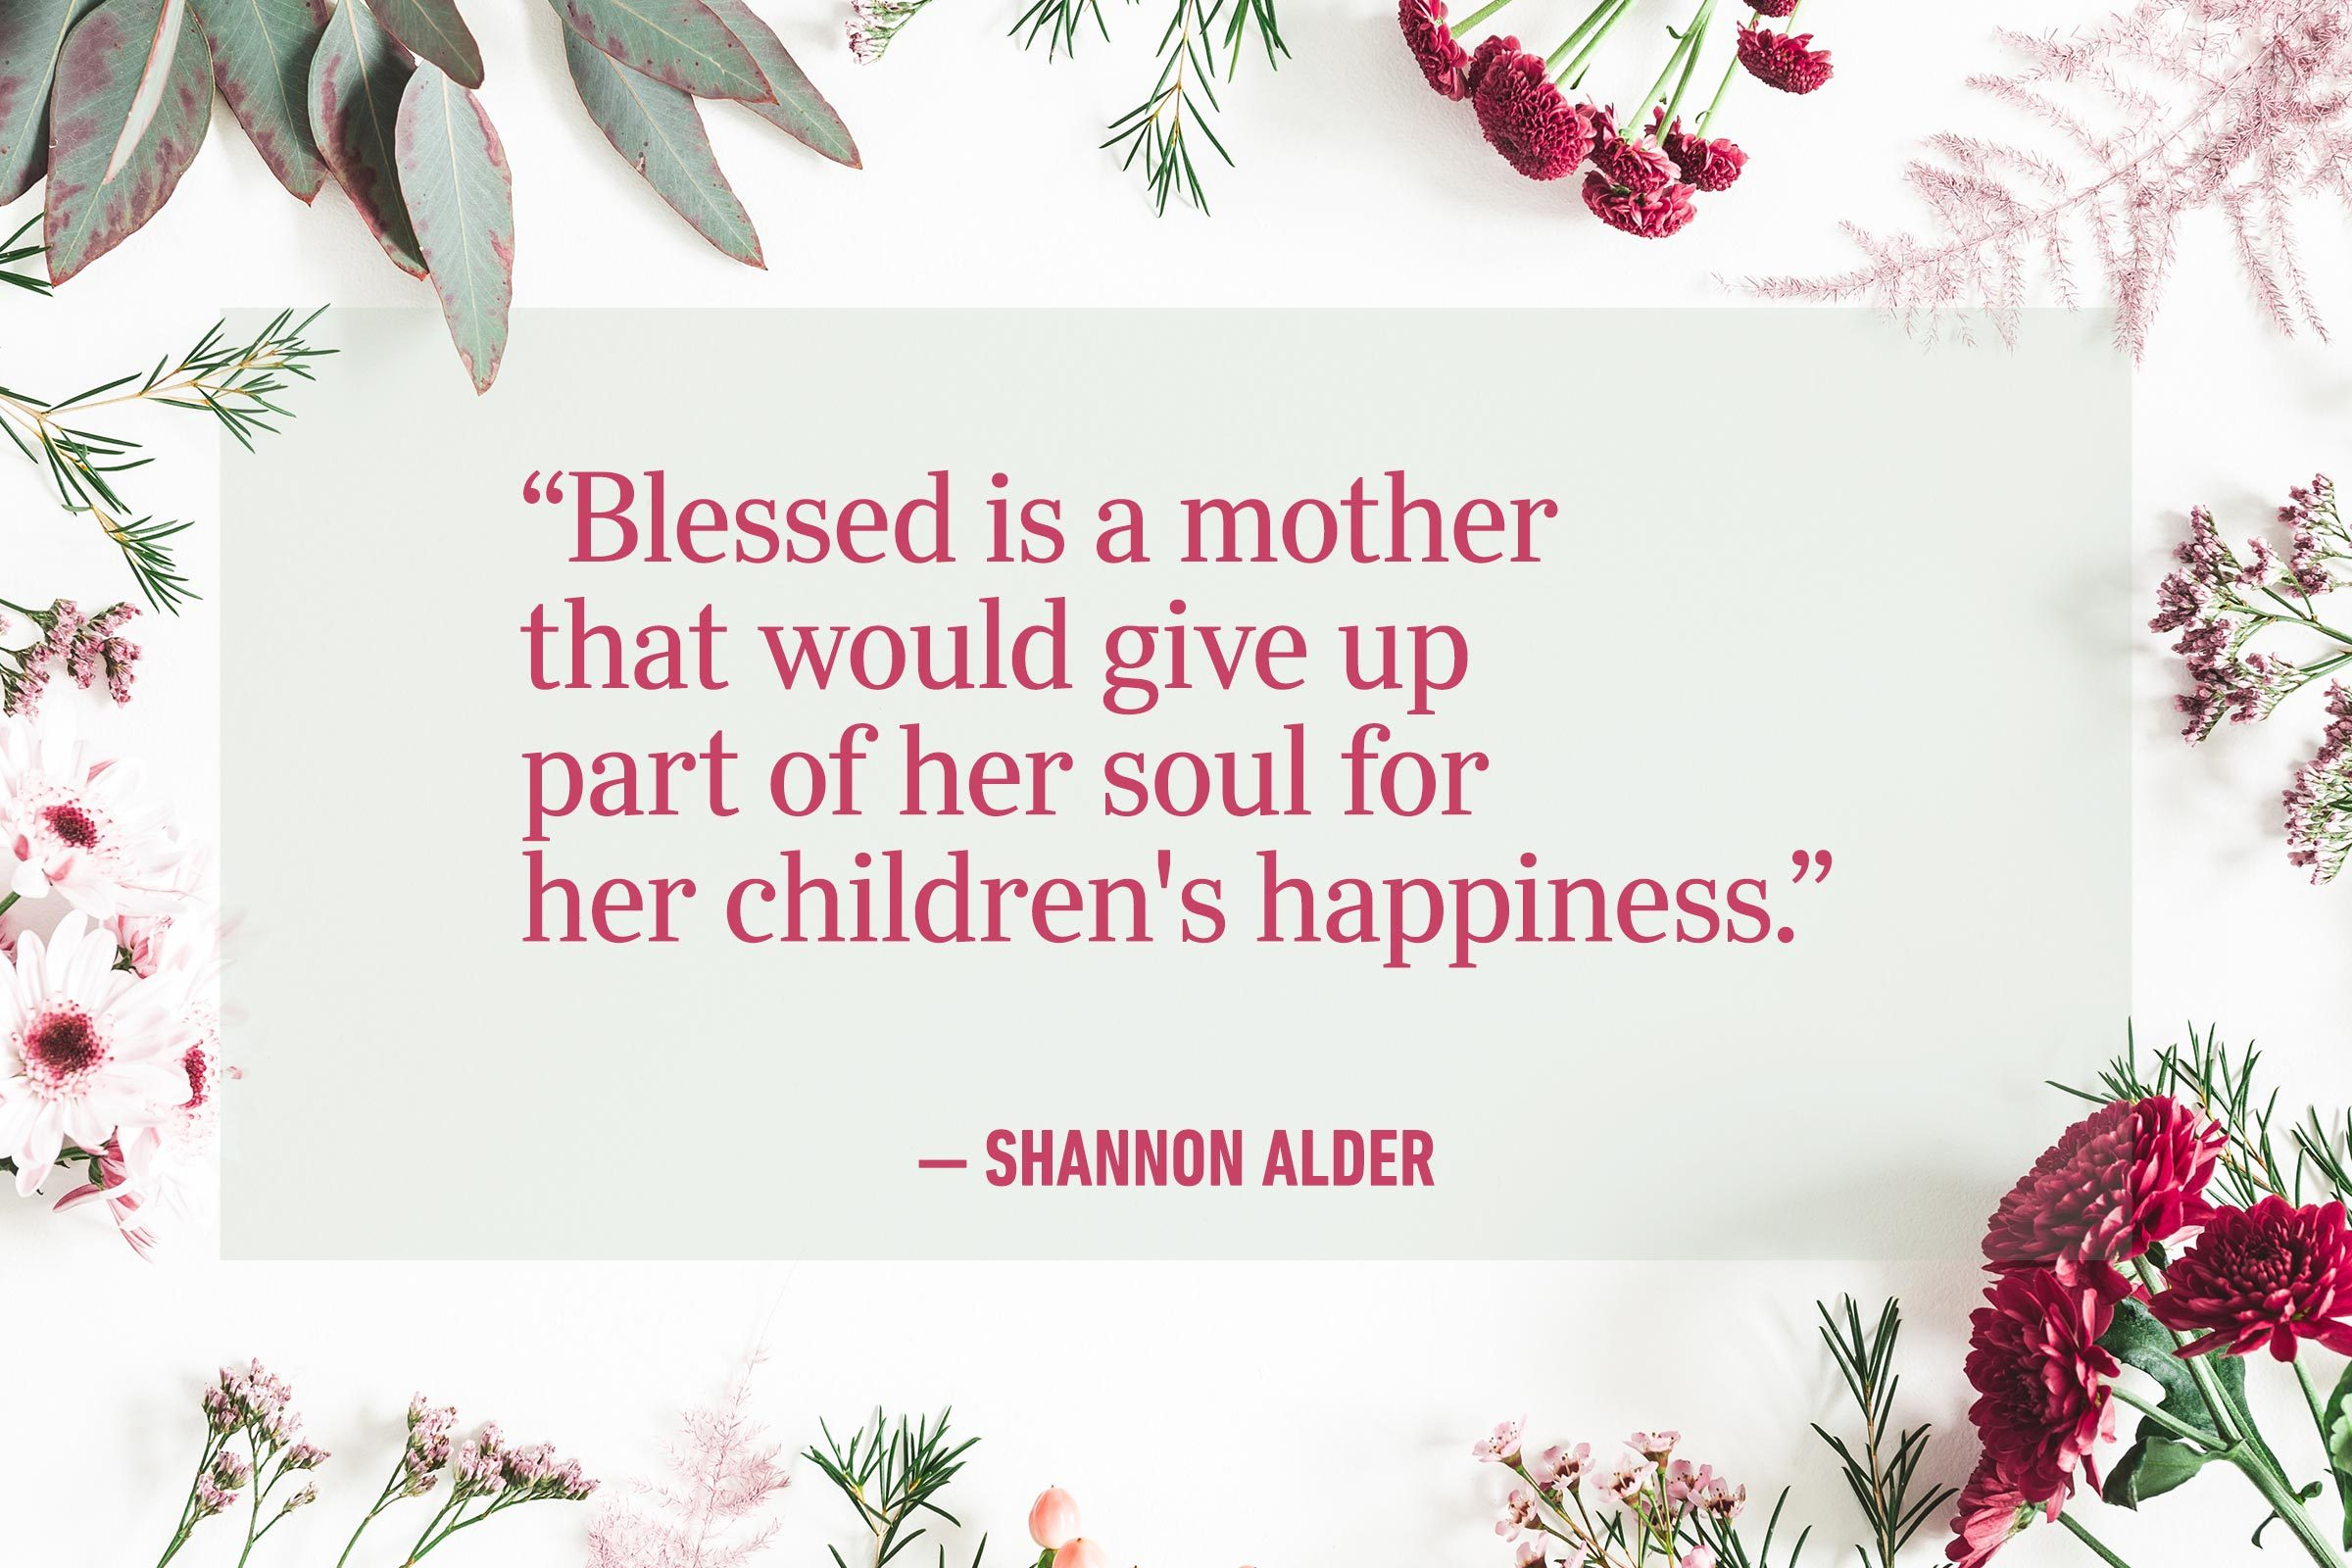 """Blessed is a mother that would give up part of her soul for her children's happiness."" —Shannon Alder"